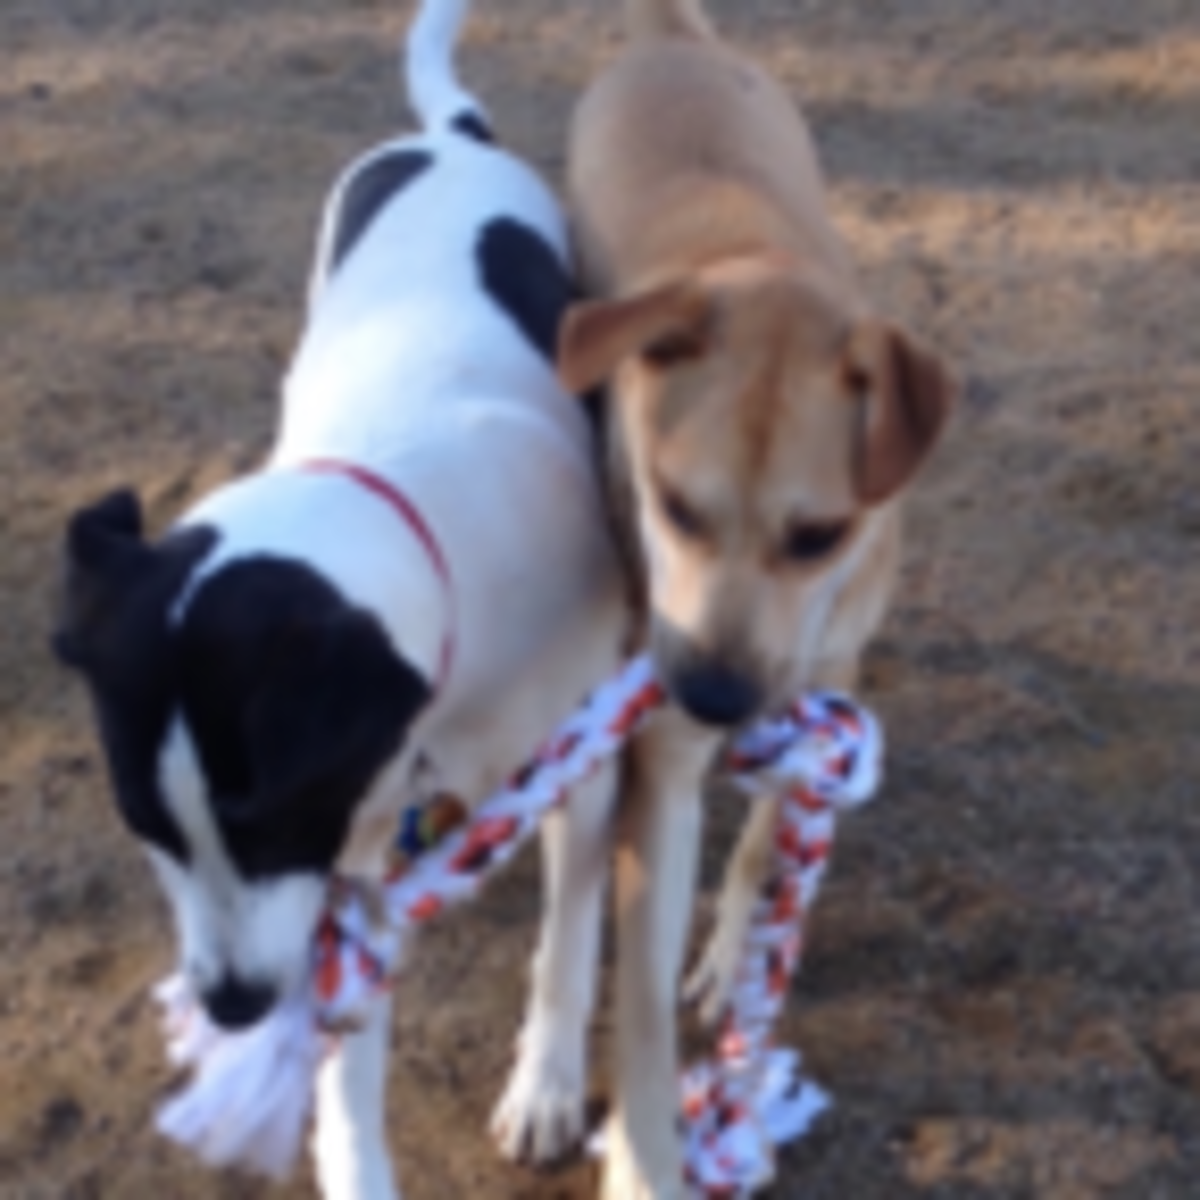 What's Happening When Dogs Play Tug-of-War? Dog Park Chatter